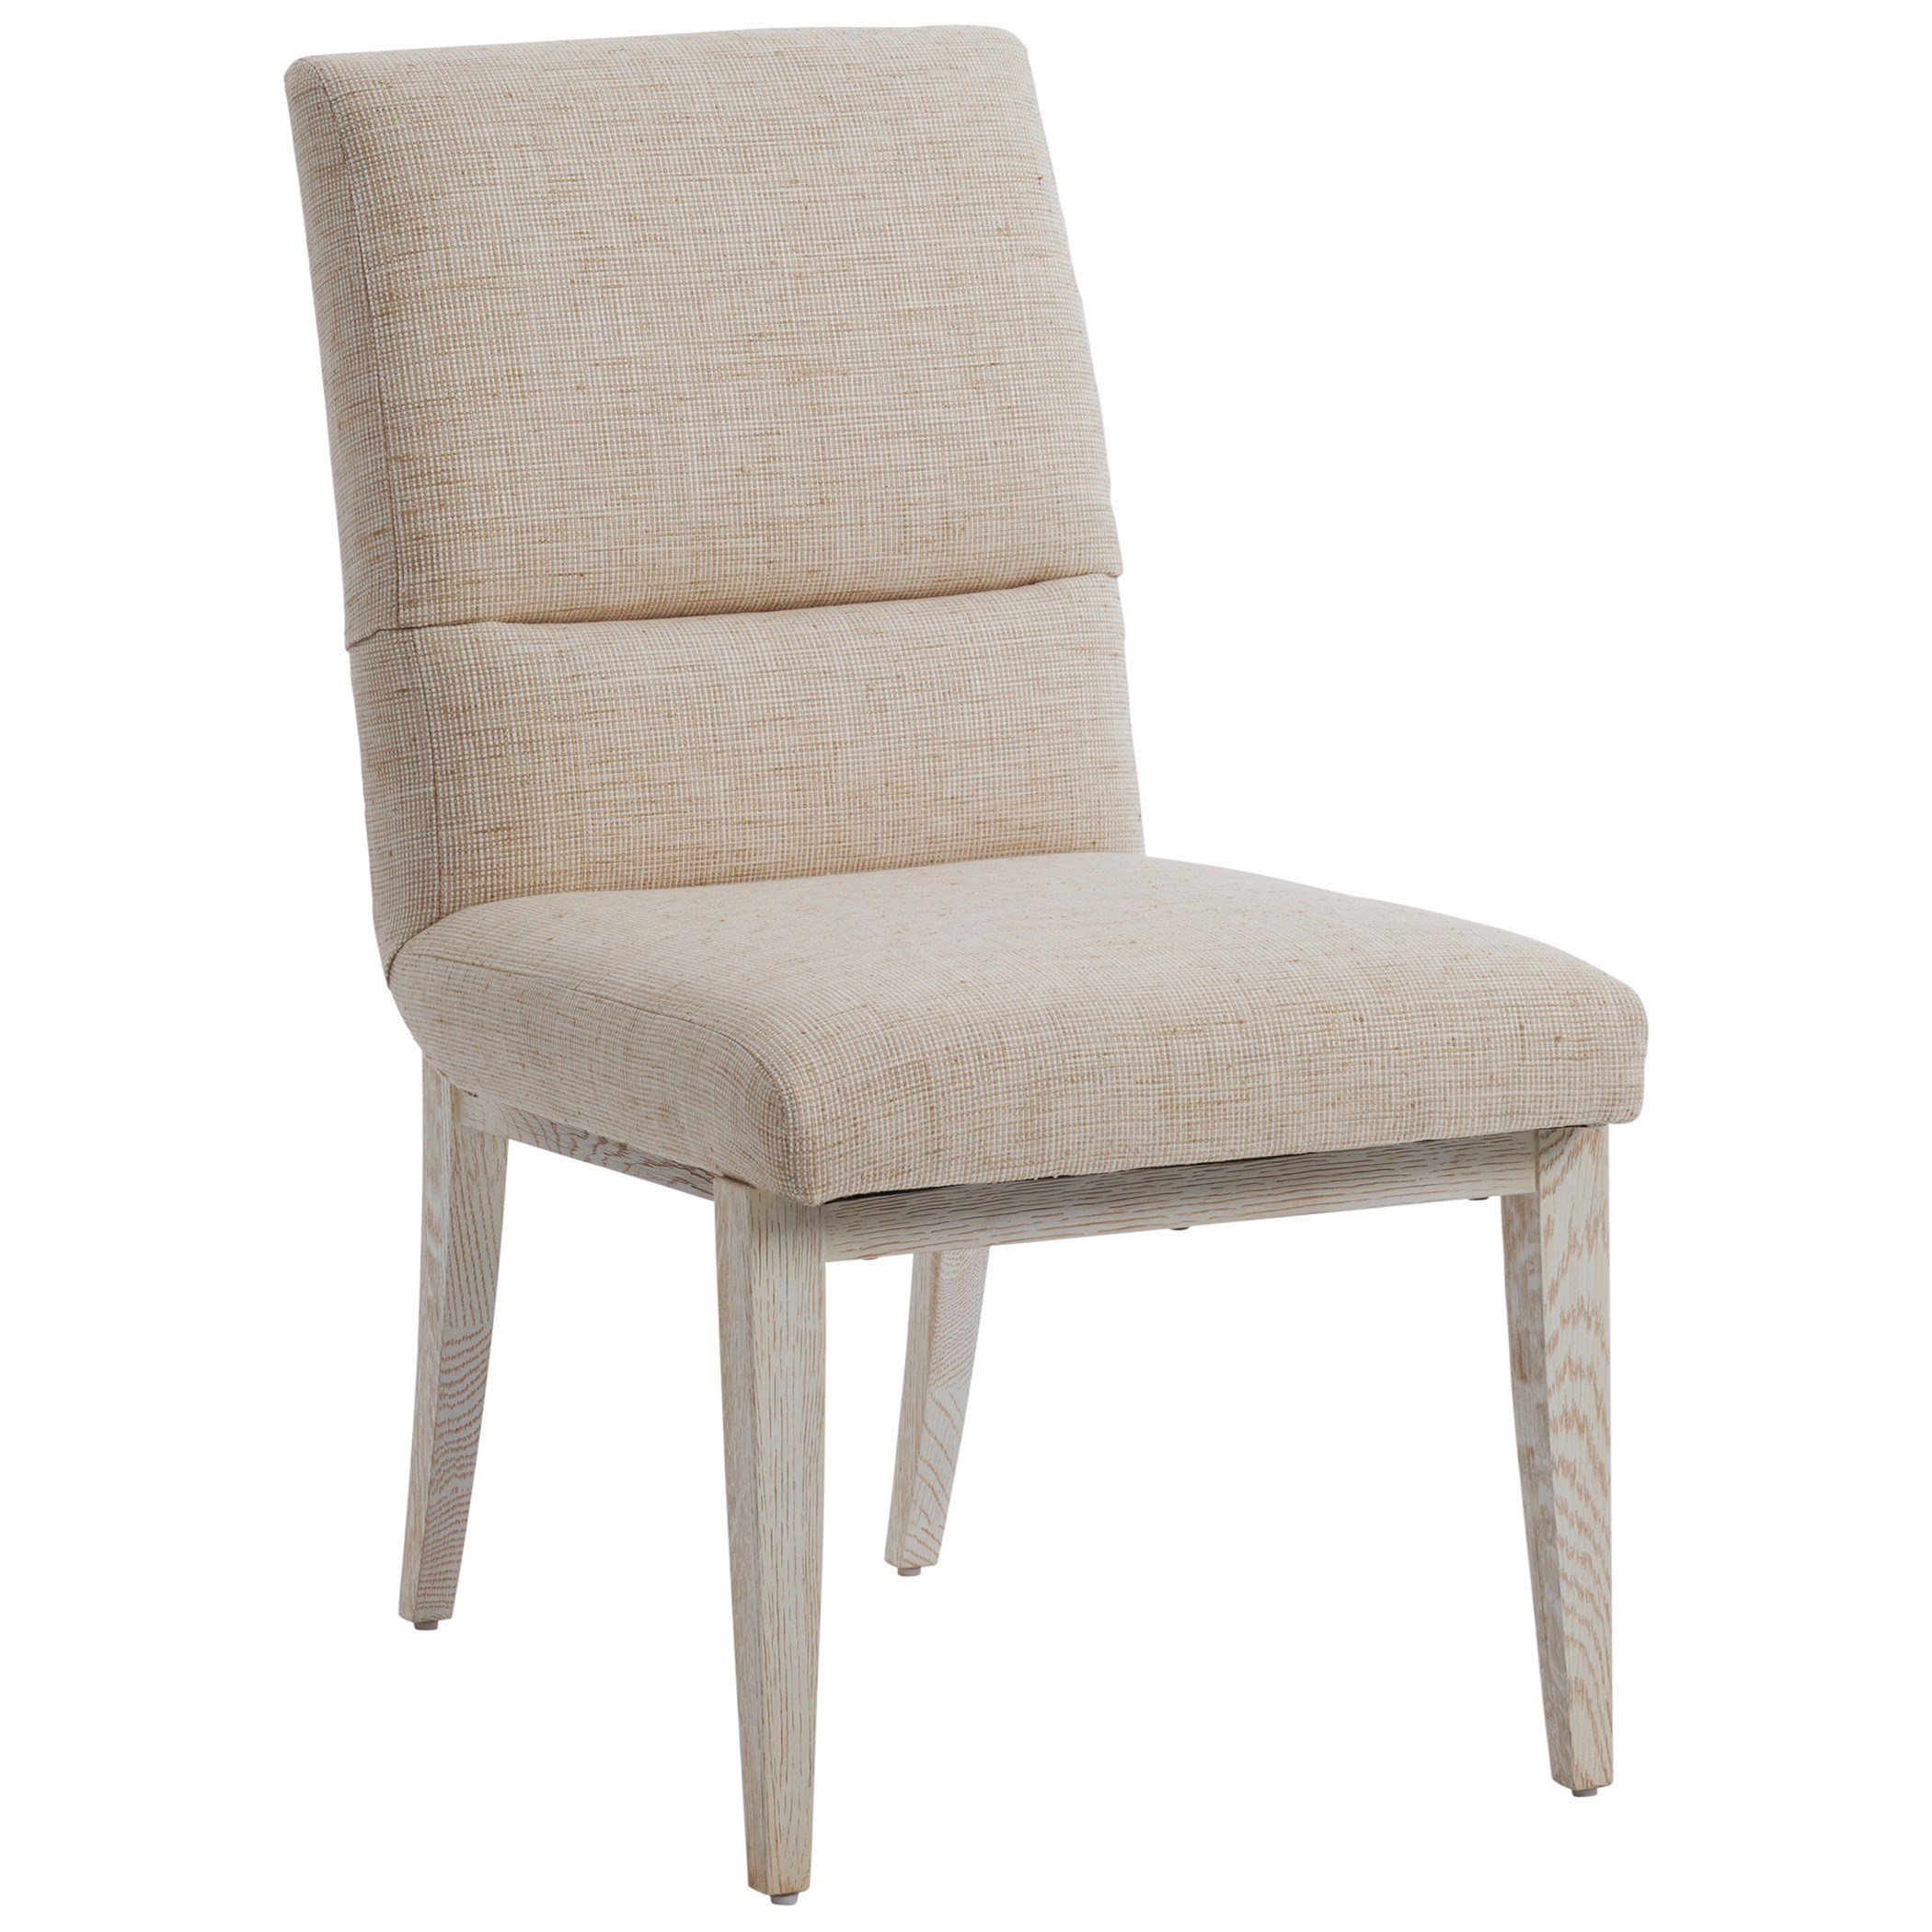 Carmel Palmero Upholstered Side Chair by Barclay Butera at Baer's Furniture